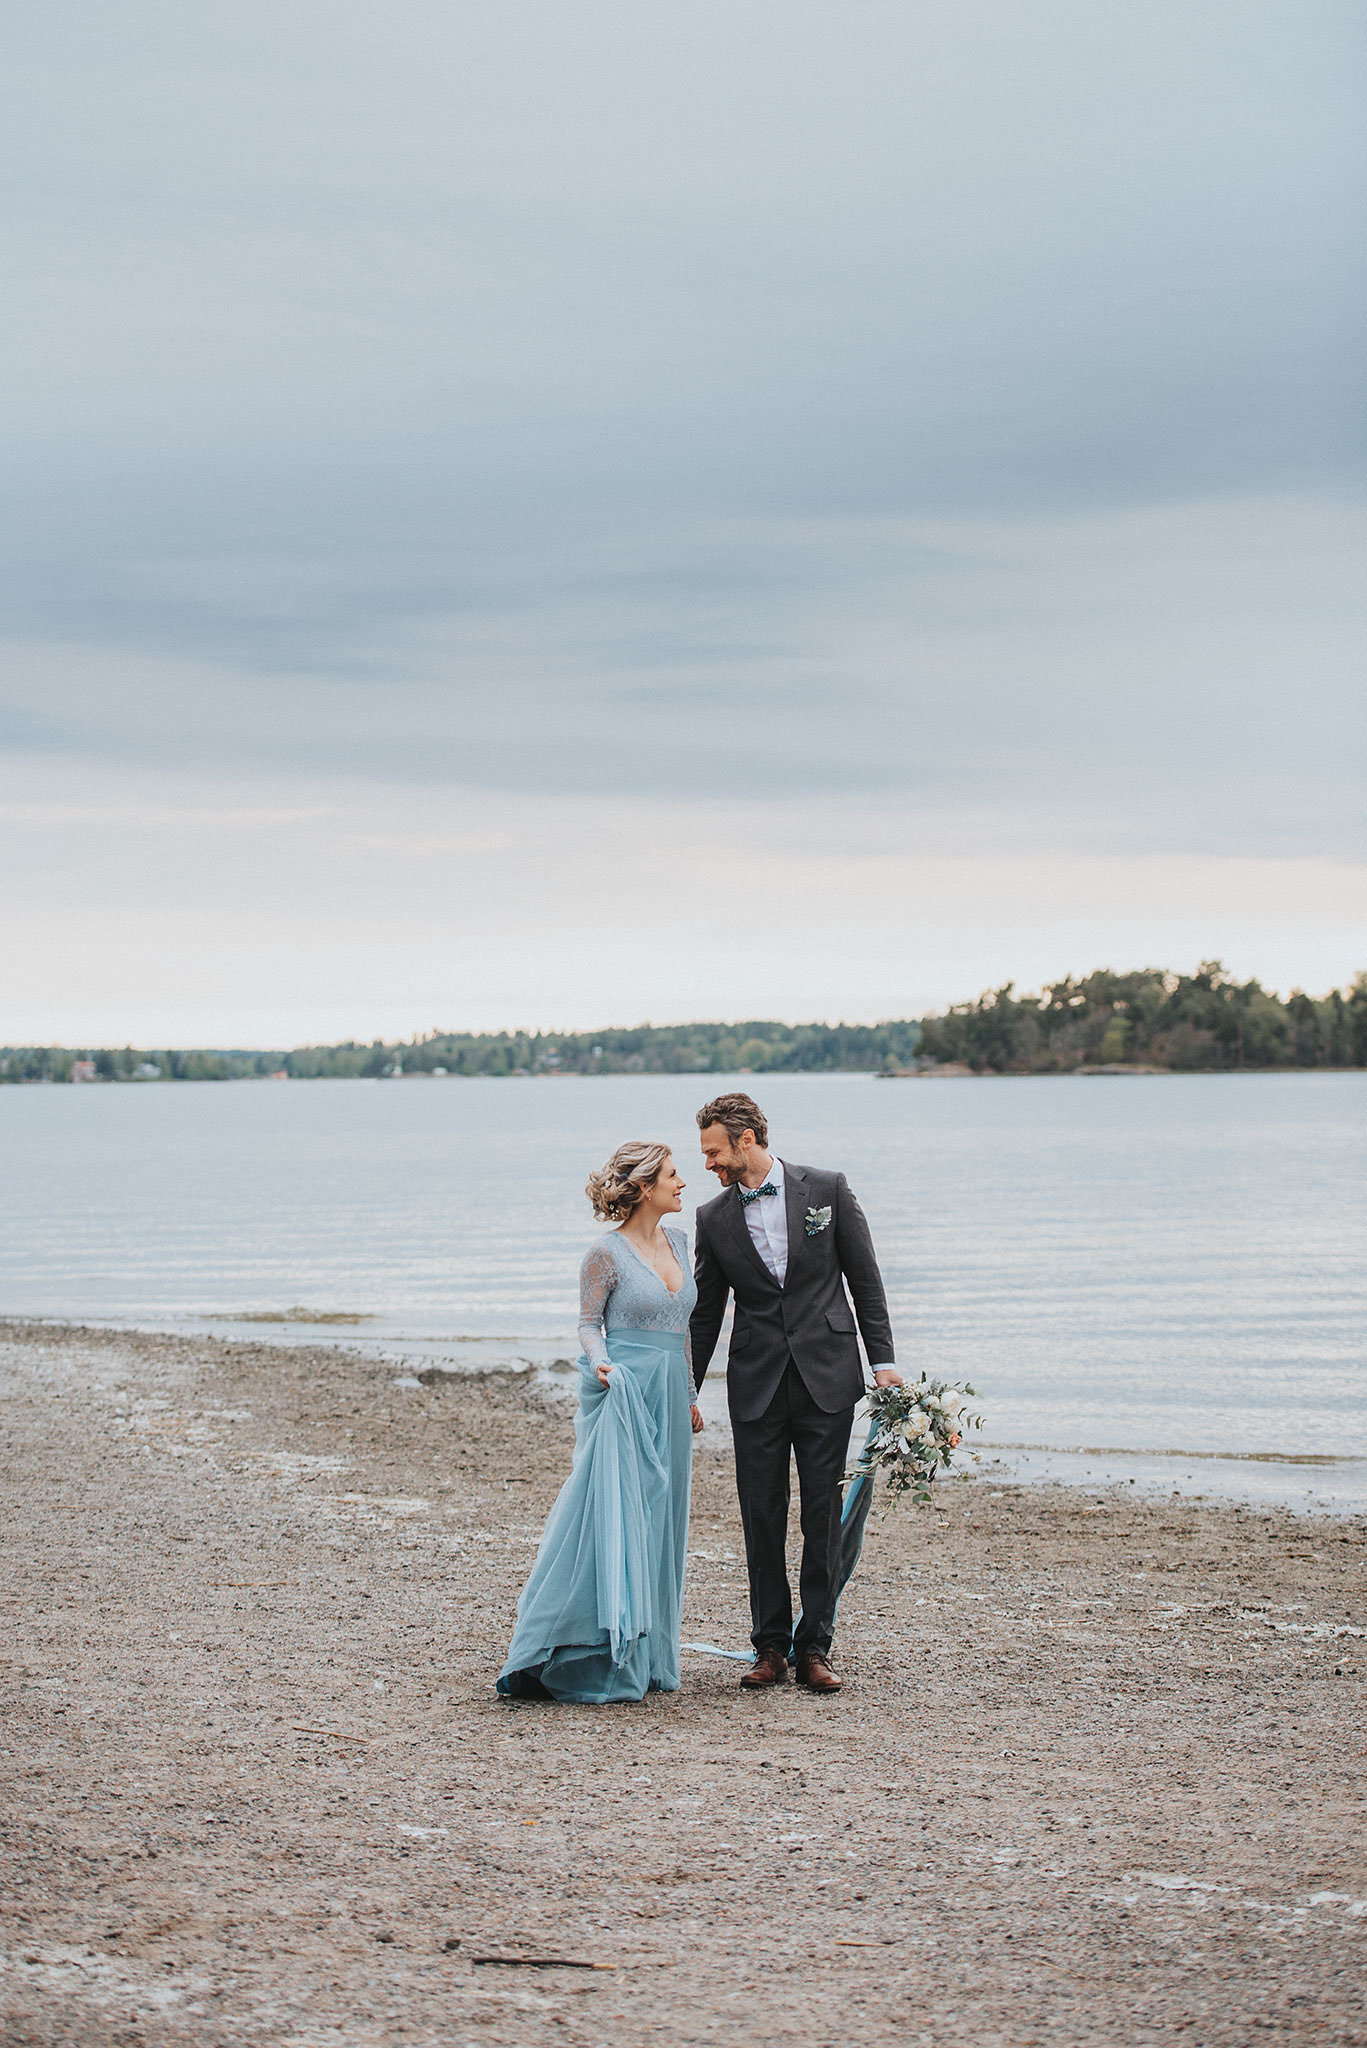 Stormy Scandinavian Wedding Inspiration Featuring a Dramatic Blue Gown | Snowflake Photo 21